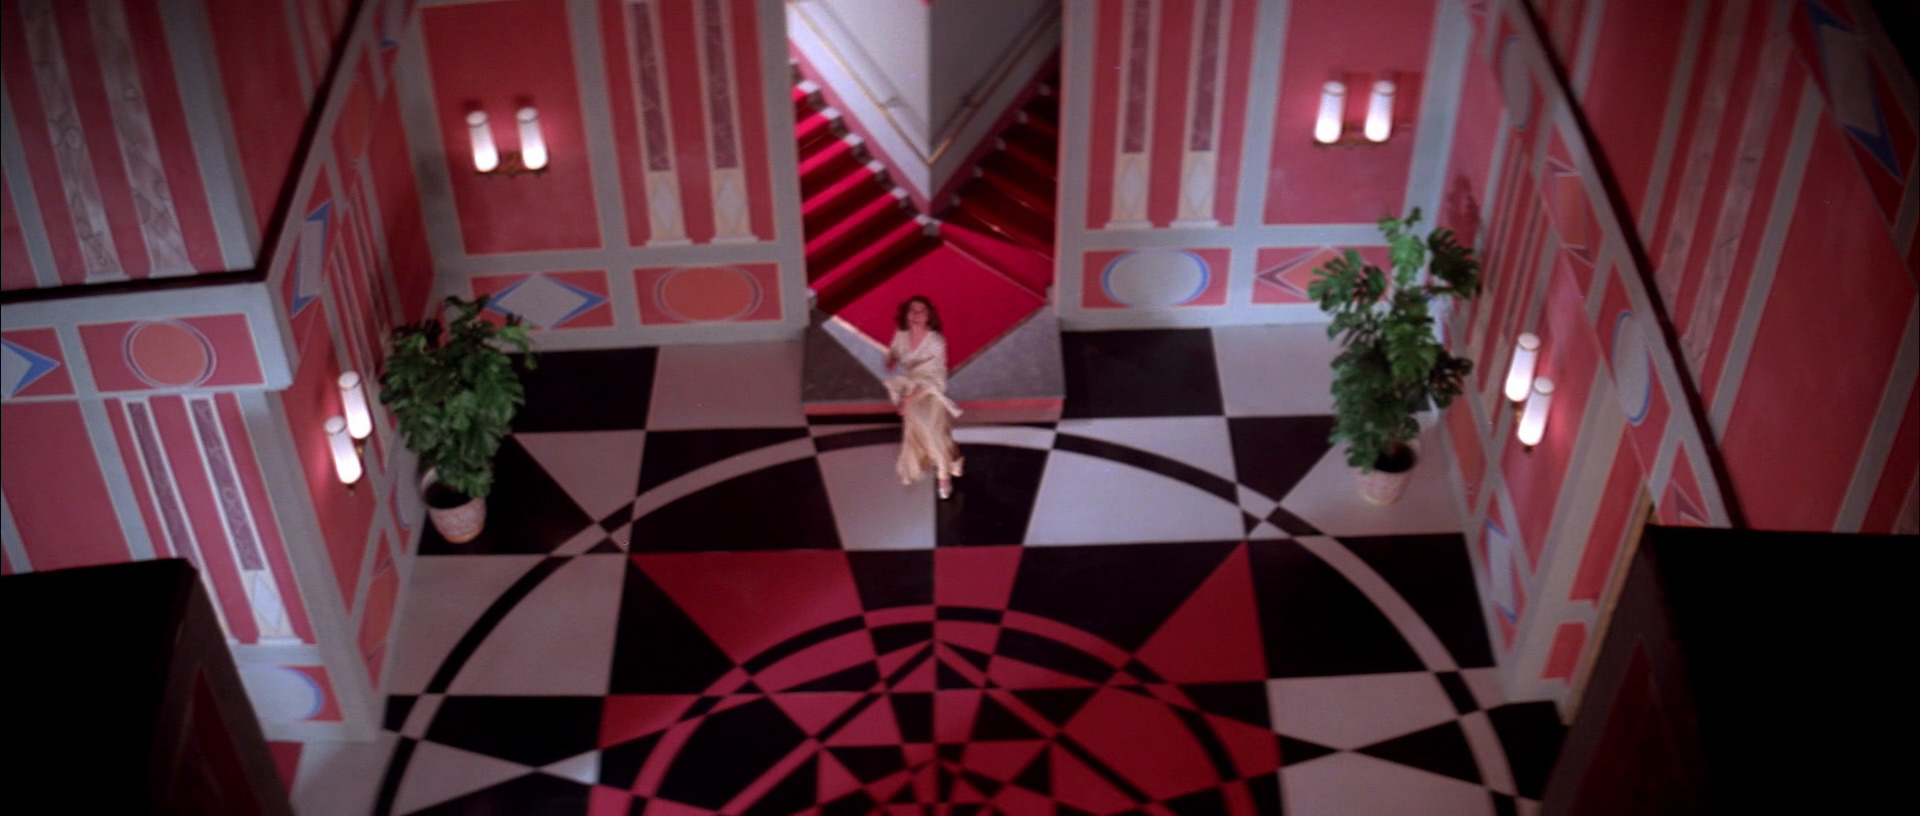 High-angle shot of a white, black and red room with a striking abstract mural on the ground. A person with white skin and long brown hair wearing a pink dressing gown appears to be running into the room from a forked stairway.